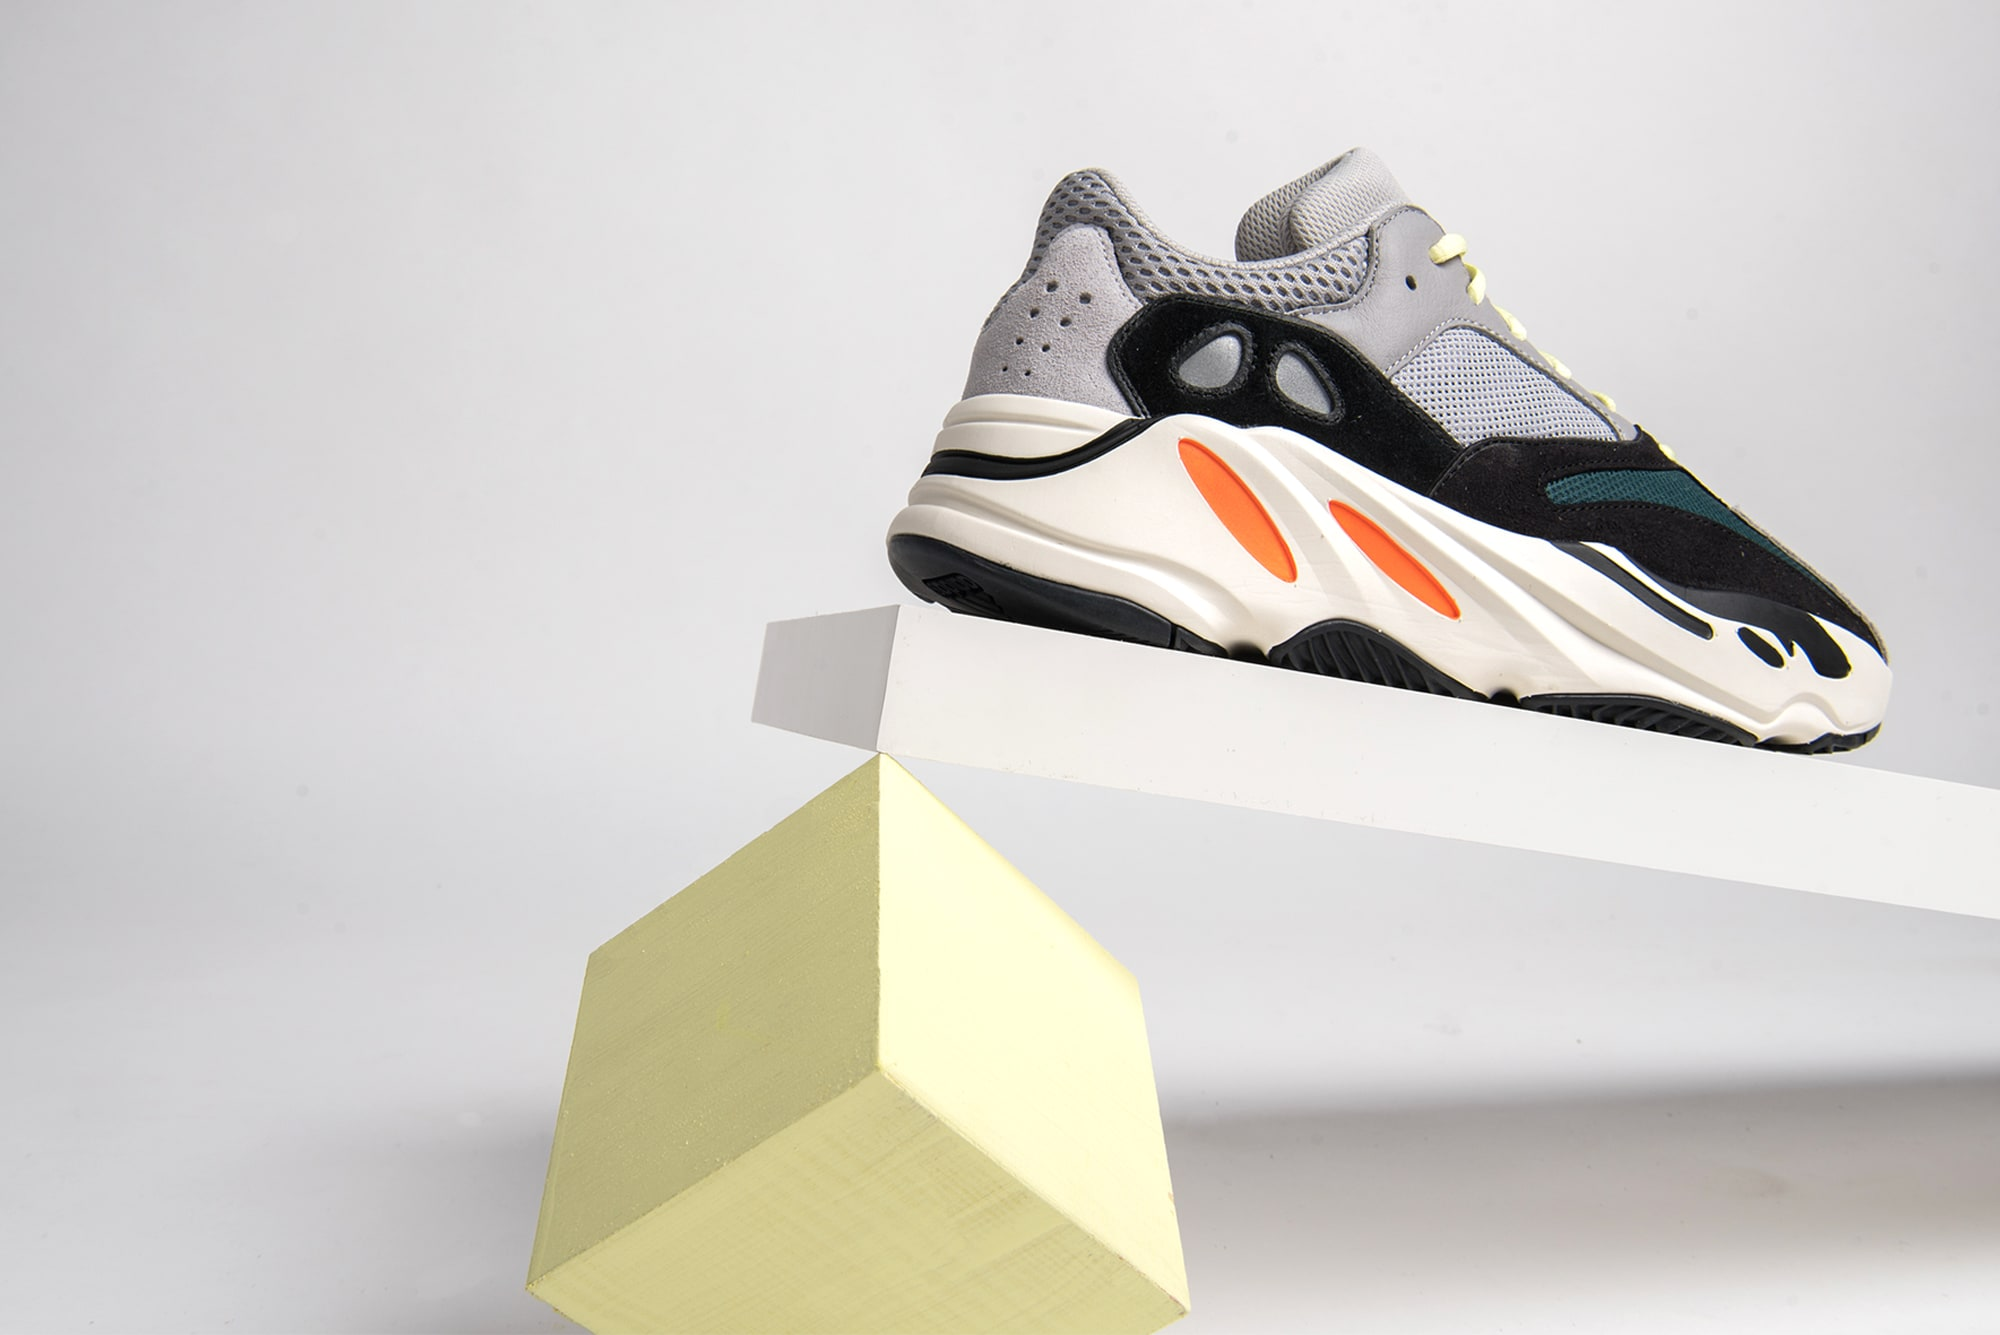 Reign Deadstock Program Adidas Yeezy Boost 700 'Wave Runner'